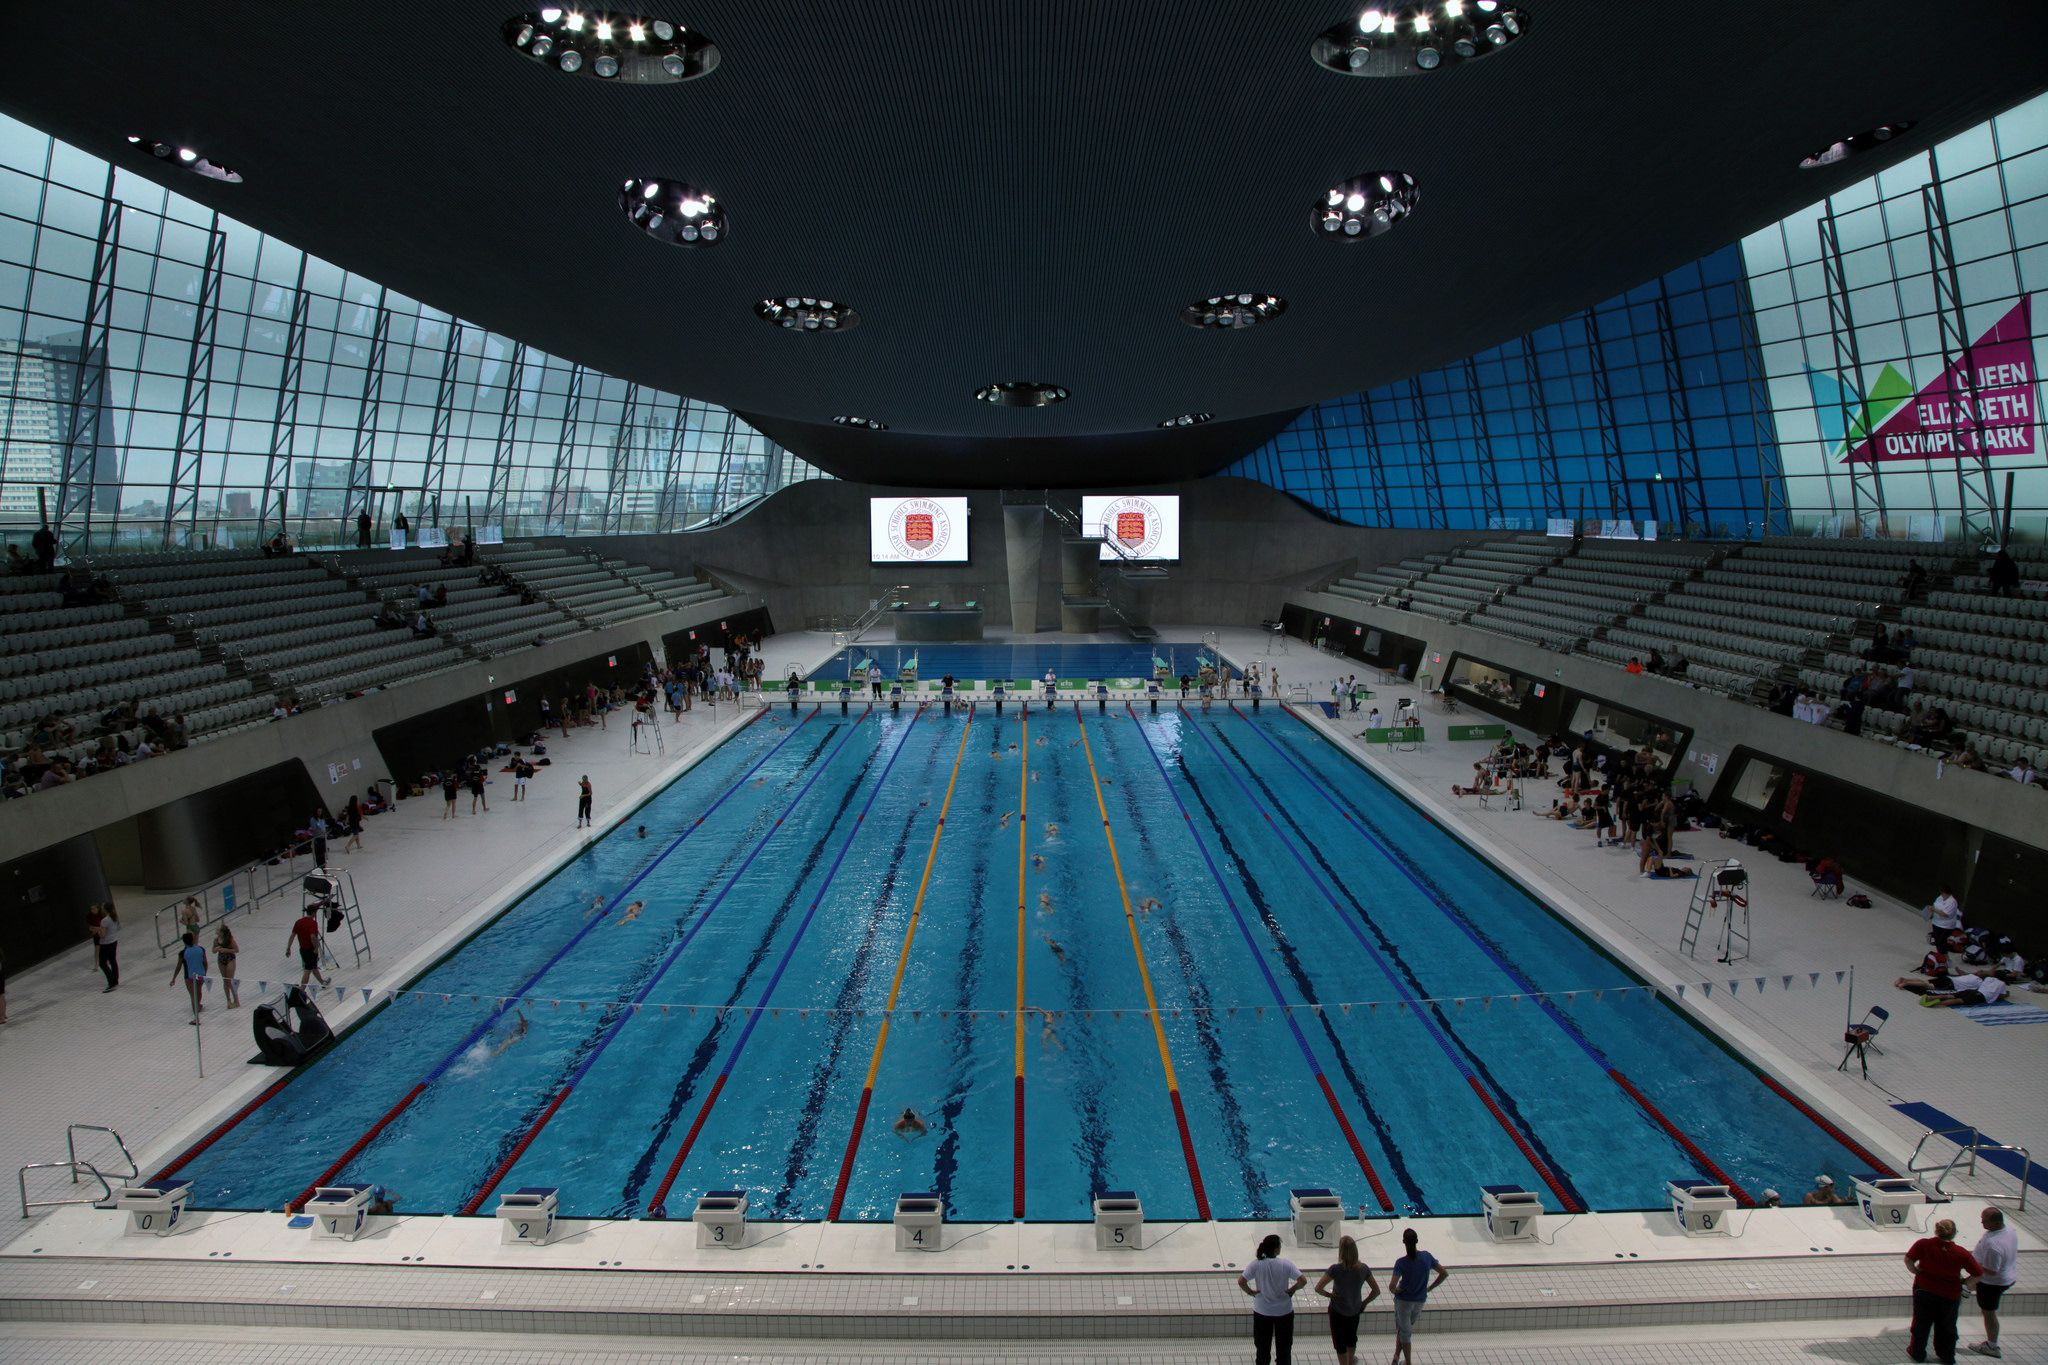 The london aquatics centre london olympics 2012 - Queen elizabeth olympic park swimming pool ...